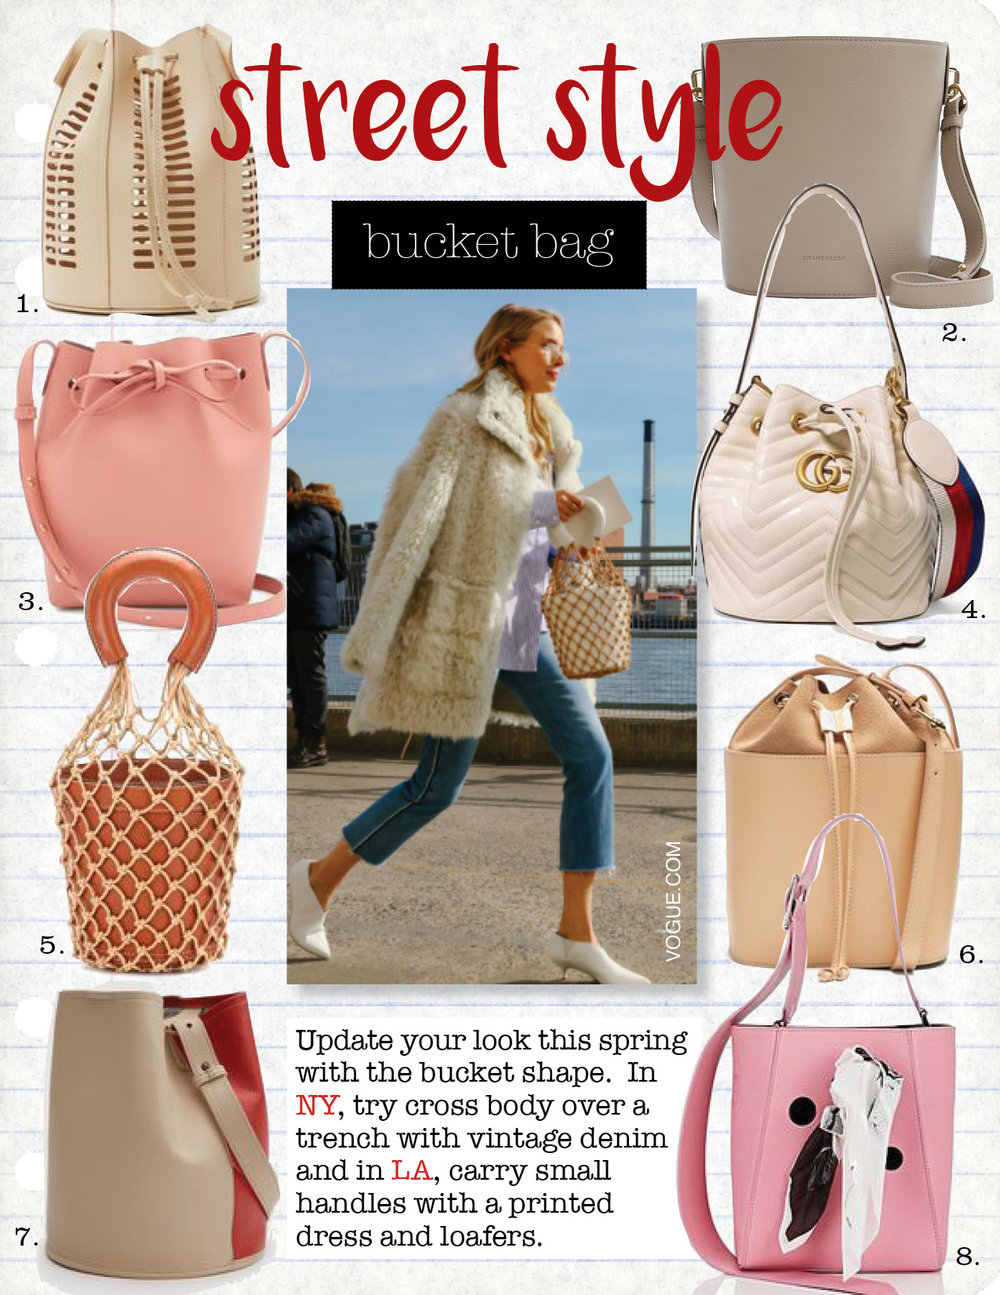 1. modern weaving mini oval die cut bucket bag, $255,  needsupply.com  2. jw anderson bucket bag in ash, $1495,  needsupply.com  3. mansur gavriel pink-lined mini leather bucket bag, $641,  matchesfashion.com  4. gucci gg marmont quilted leather bucket bag, $2190,  net-a-porter.com  5. staud moreau macrame and leather bucket bag, $384,  matchesfashion.com  6. apc claire leather and suede bucket bag, $541,  matchesfashion.com  7. creatures of comfort small bucket bag in clove/cappuccino, $525,  needsupply.com  8. calvin klein 205w39nyc  small leather bucket bag, $1695,  barneys.com